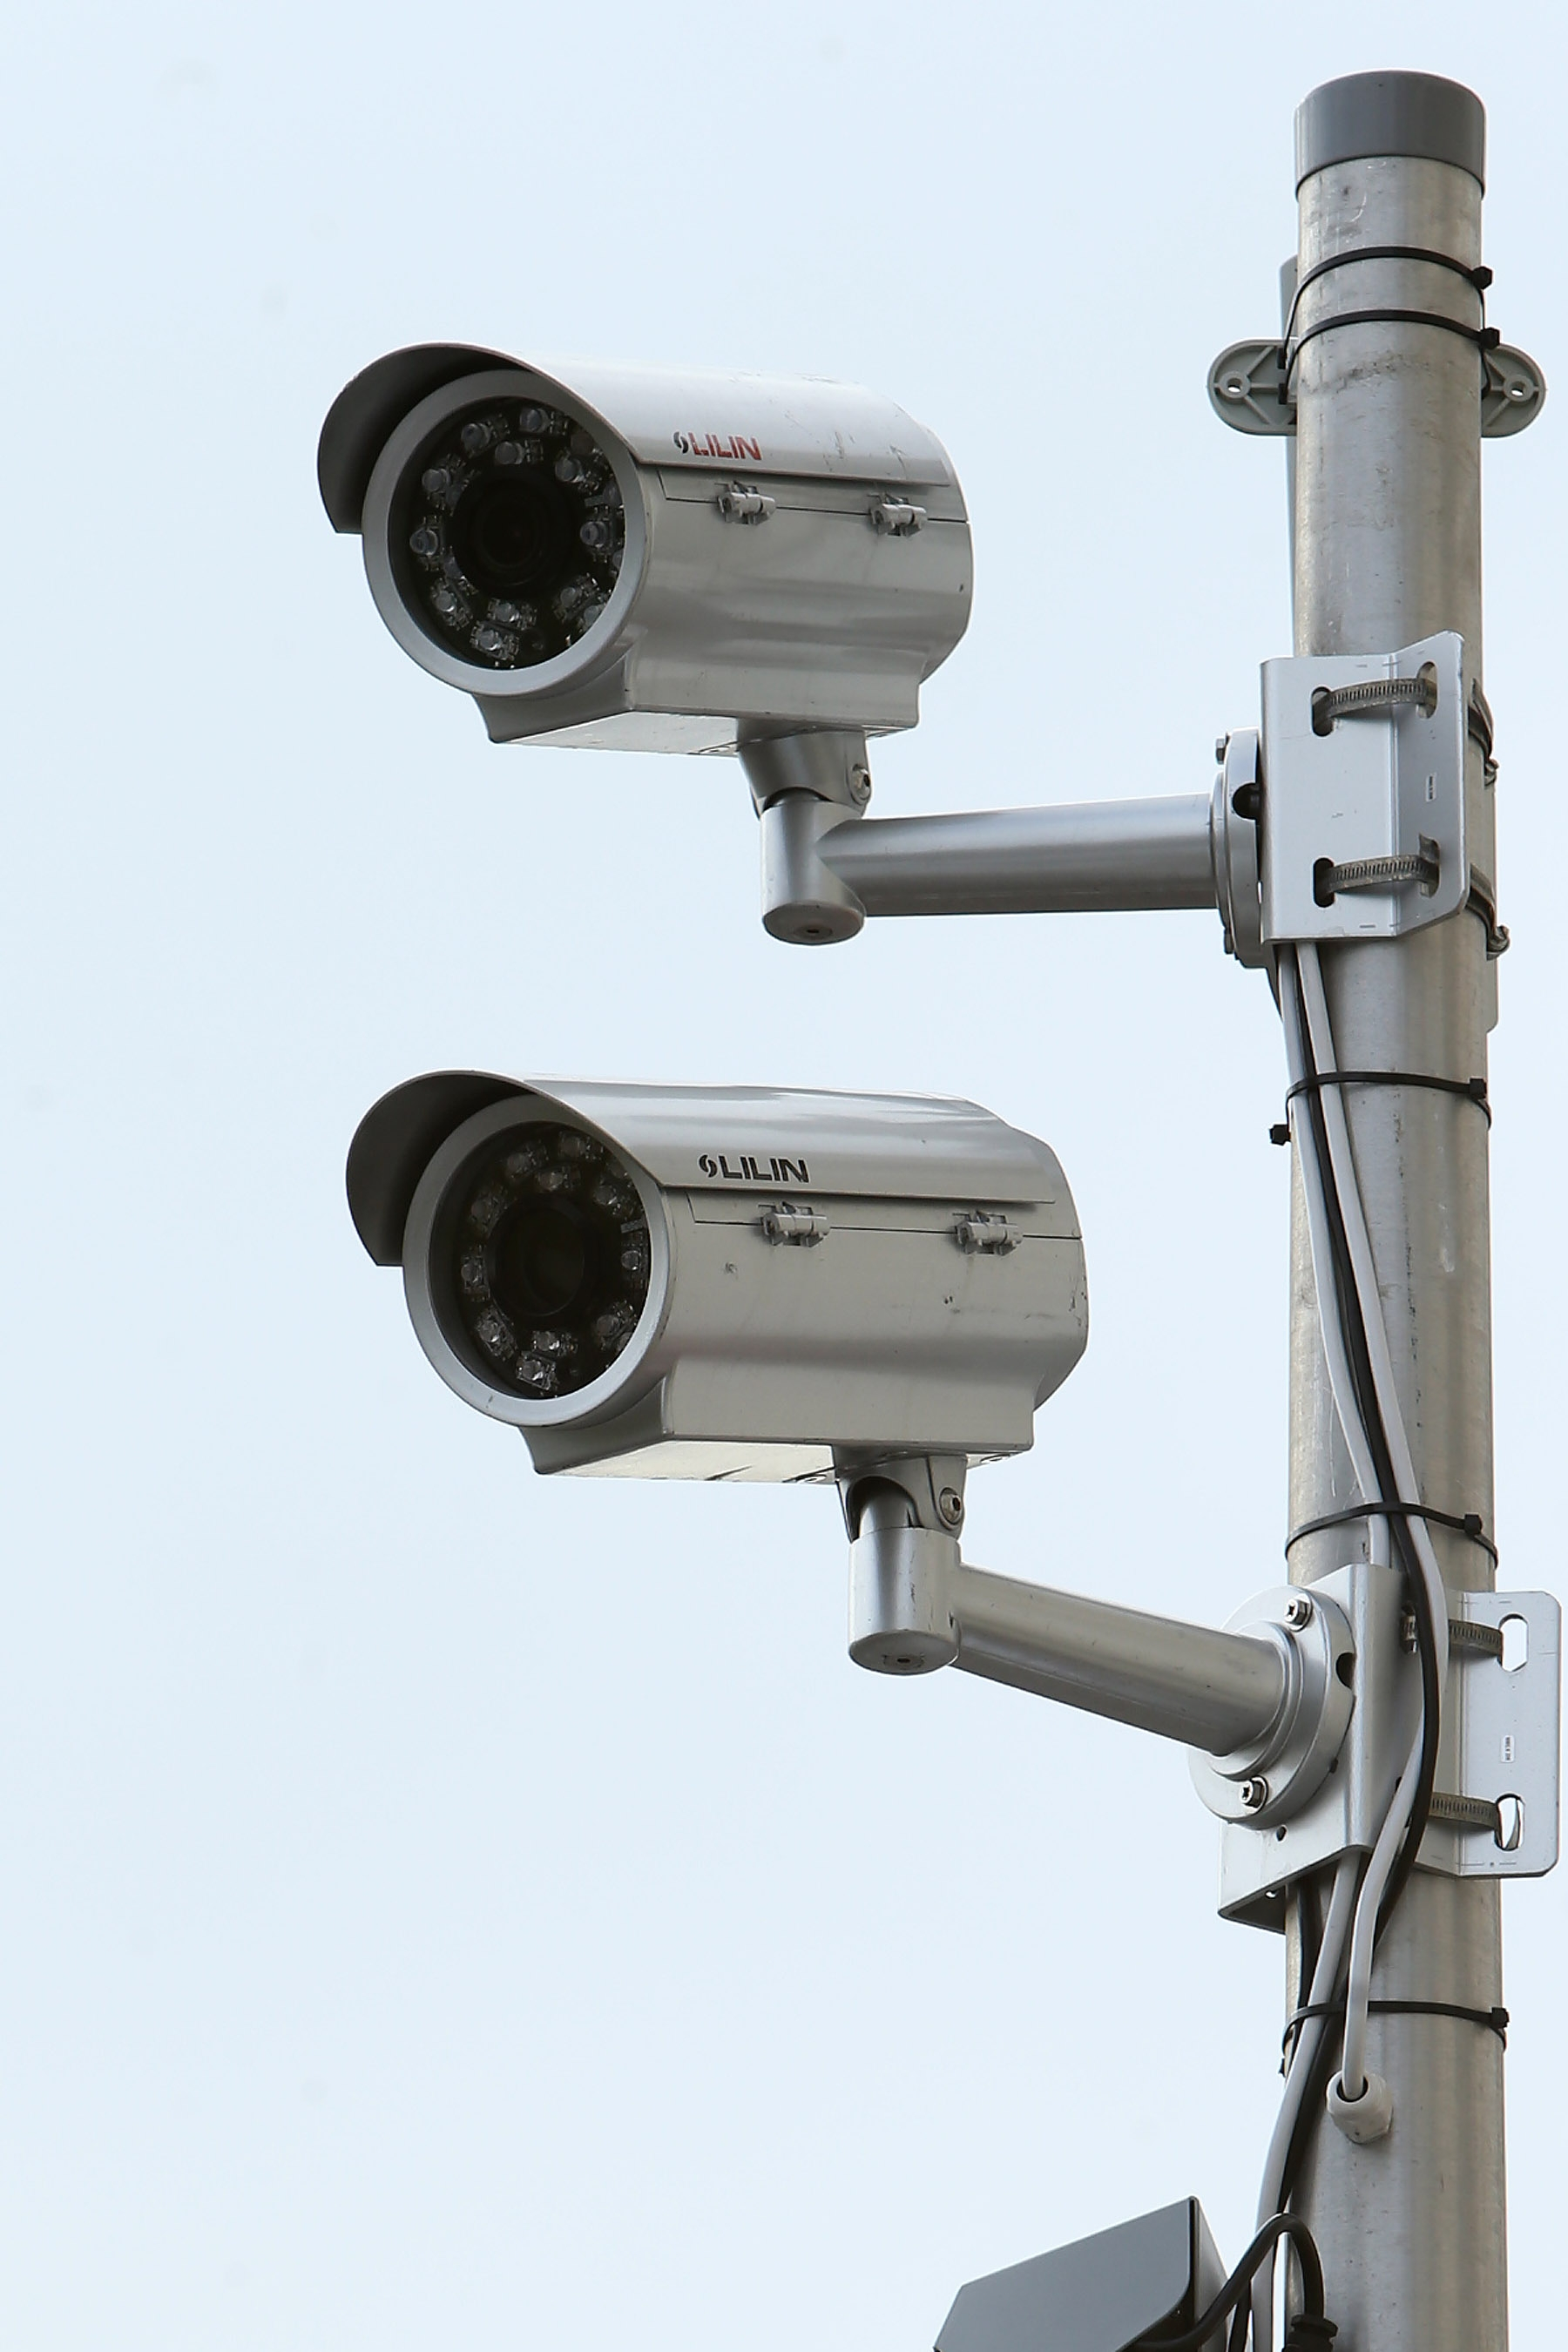 Council to consider multi-million pound CCTV contract with neighbouring boroughs